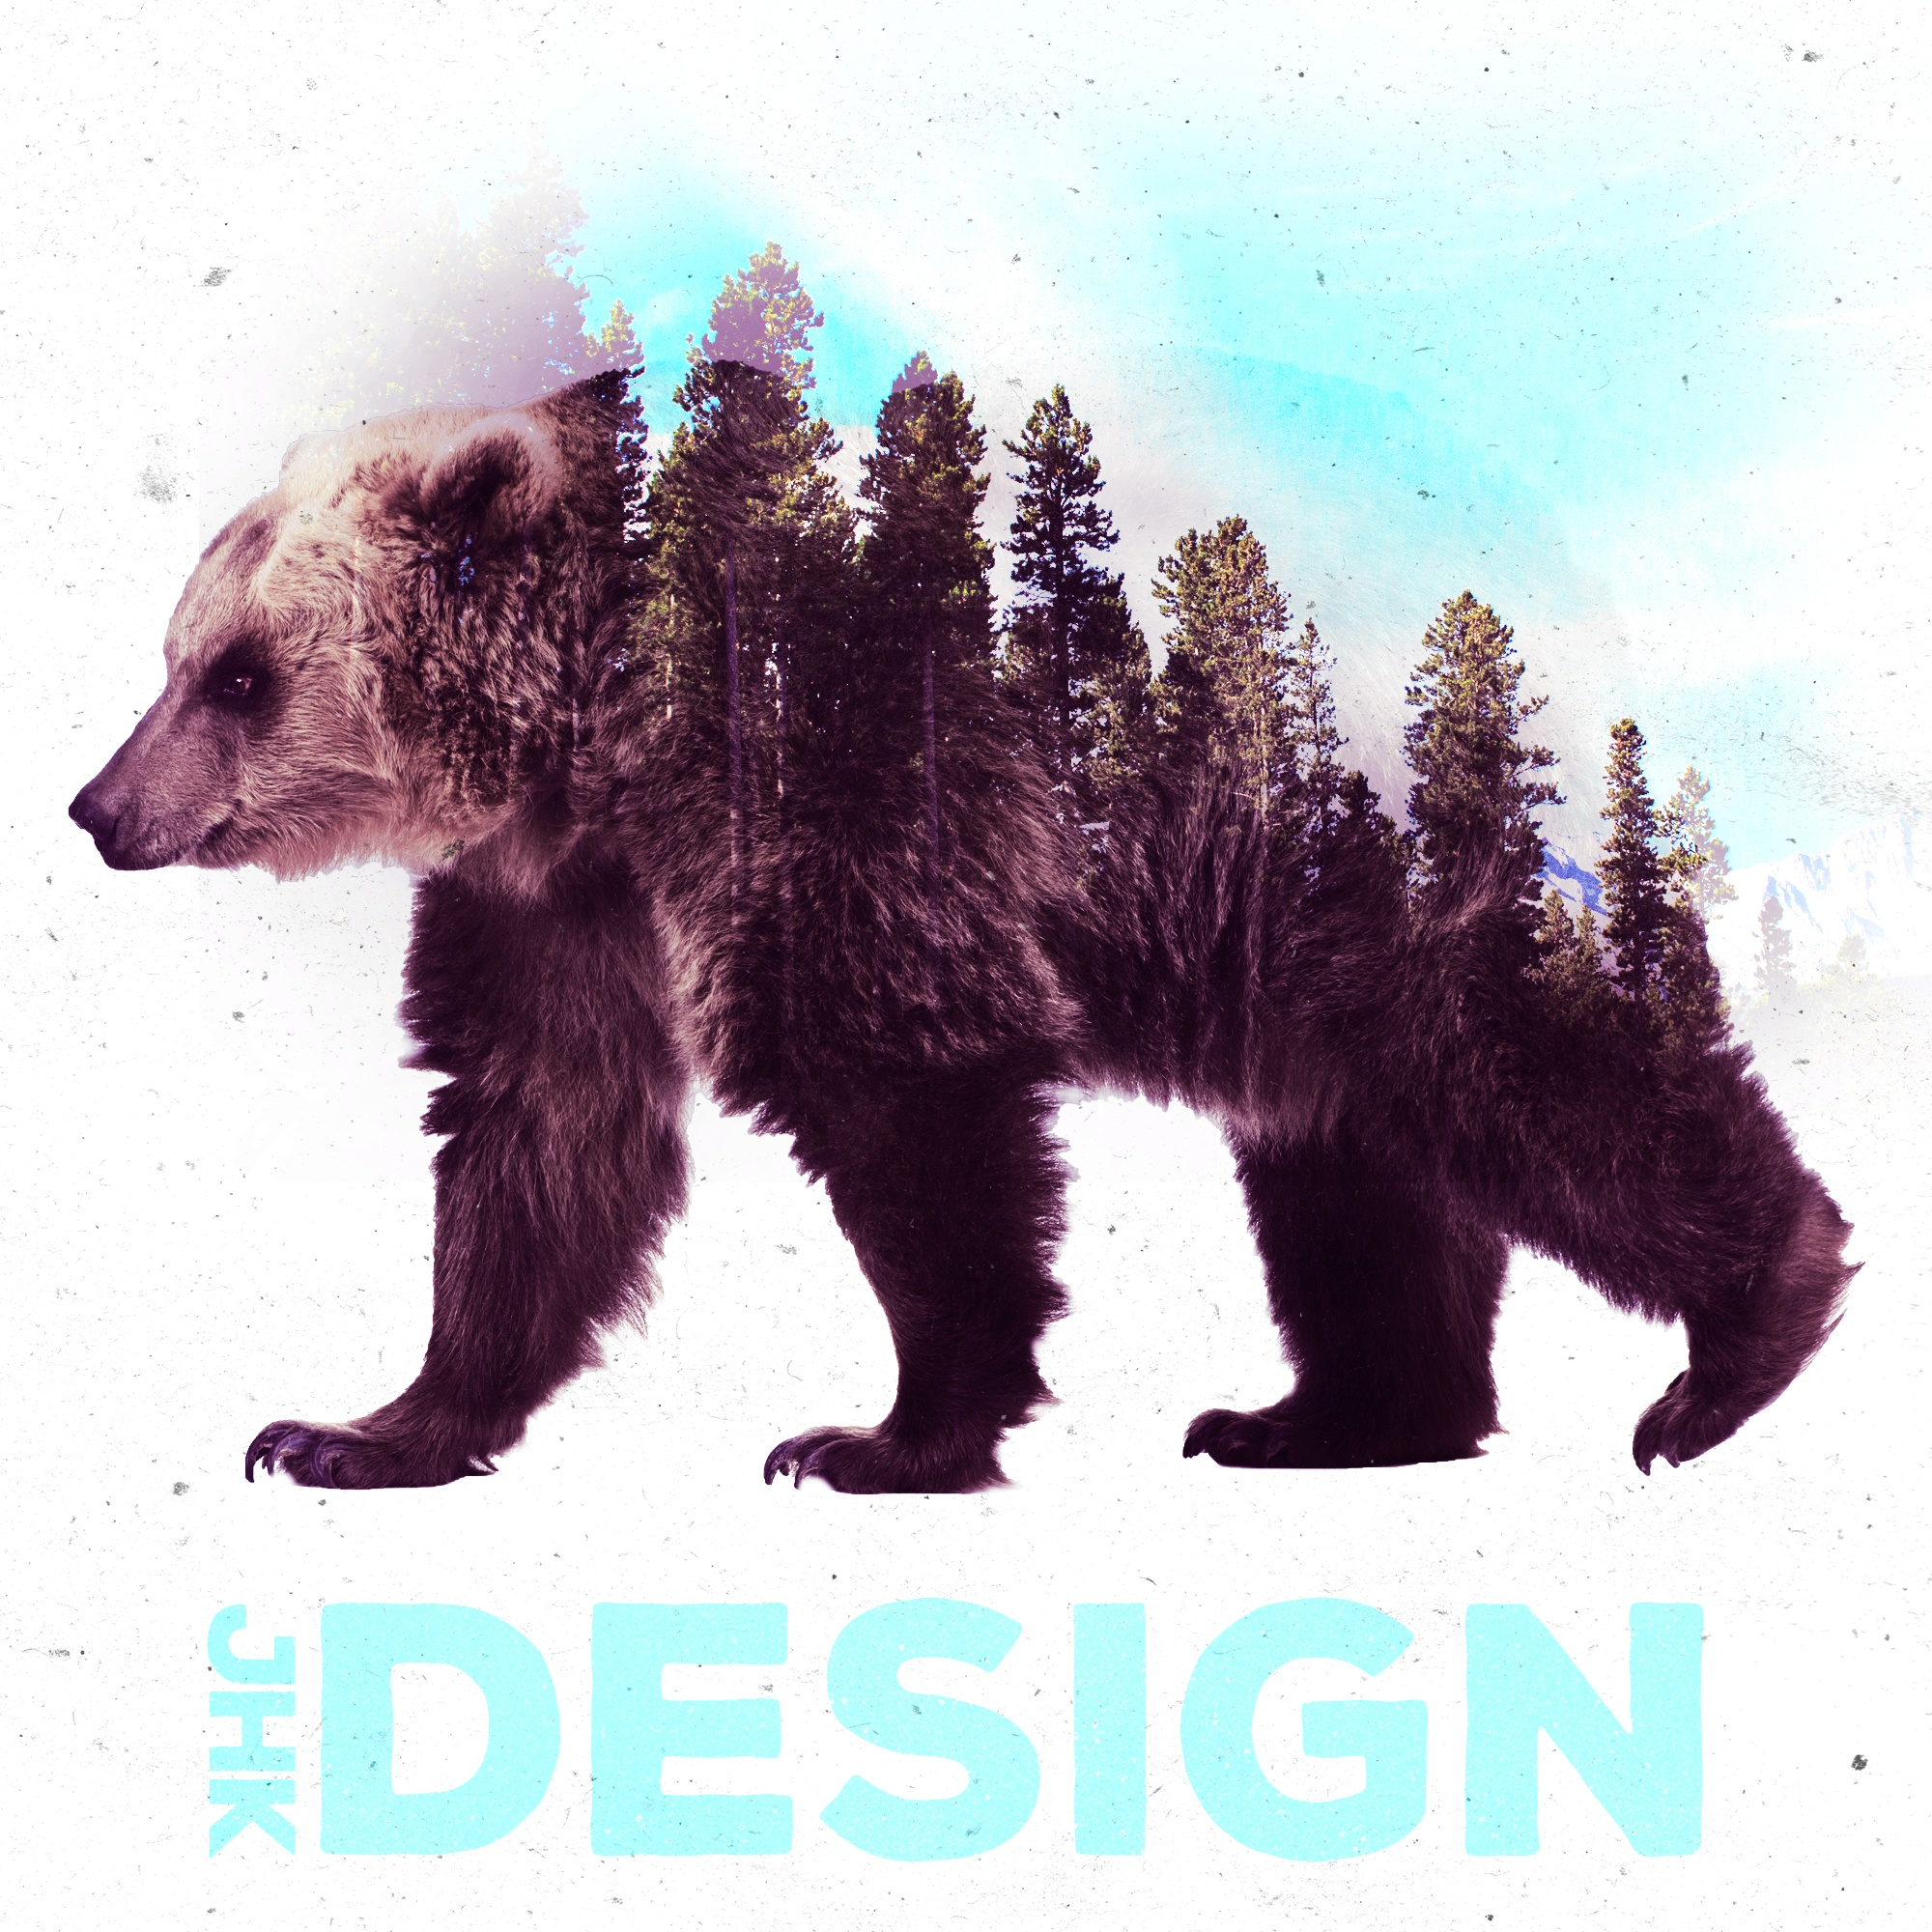 JHK Design Original Double Exposure Bear